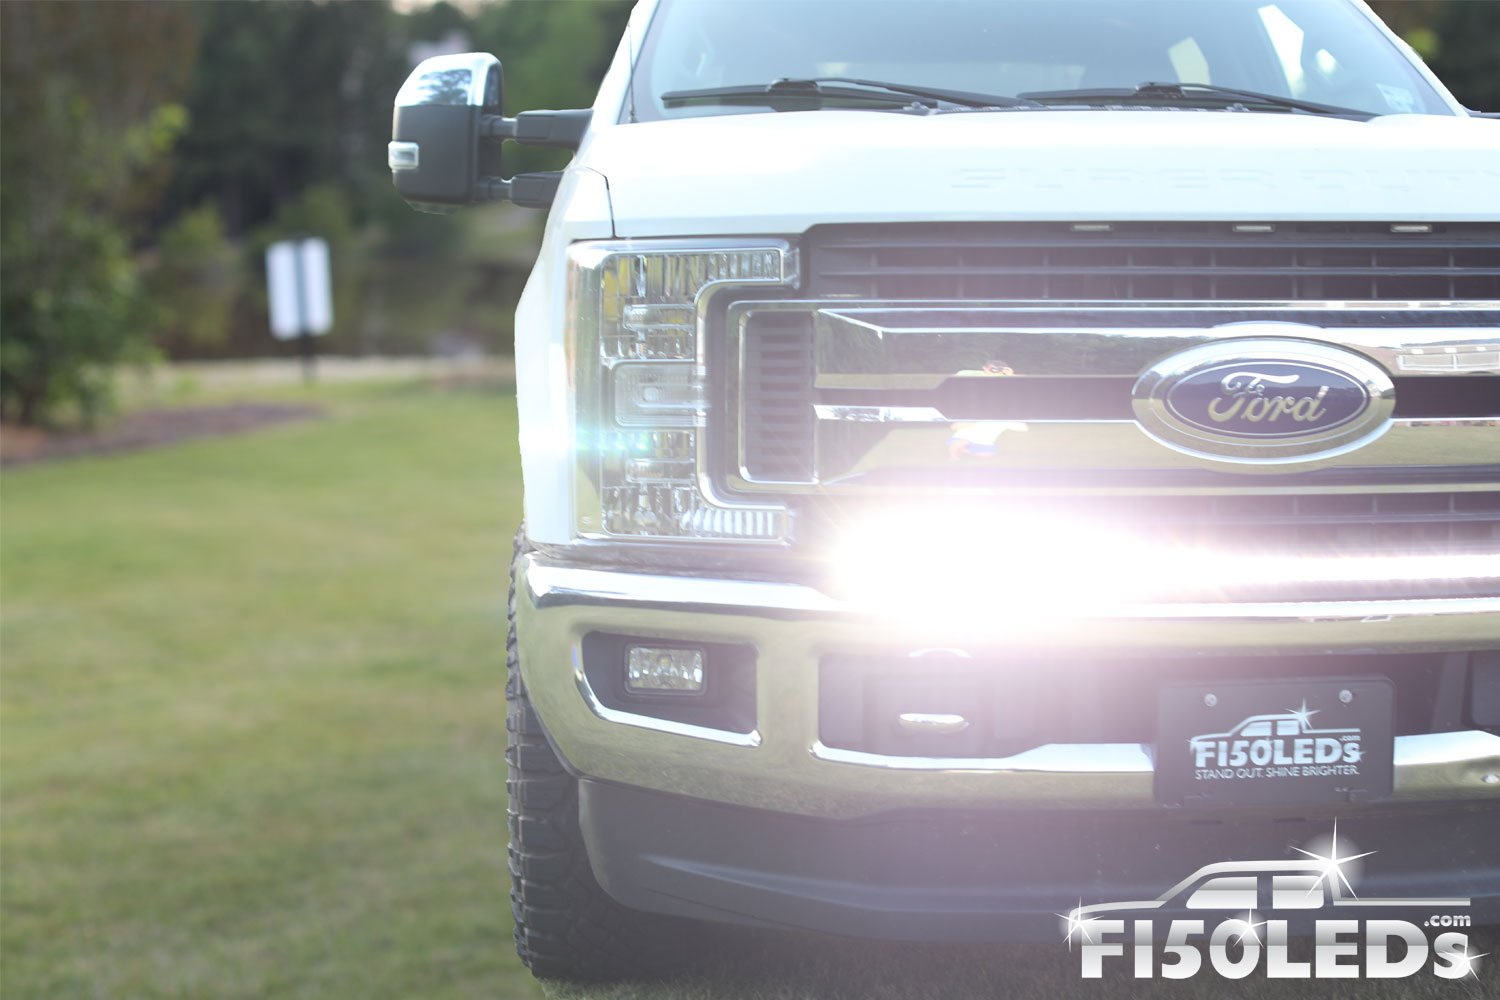 2017 - 2020 F250 Super Duty PALADIN 210W Curved CREE XTE LED Bumper Bar-2017 - 2020 F250 Super Duty-F150LEDs.com